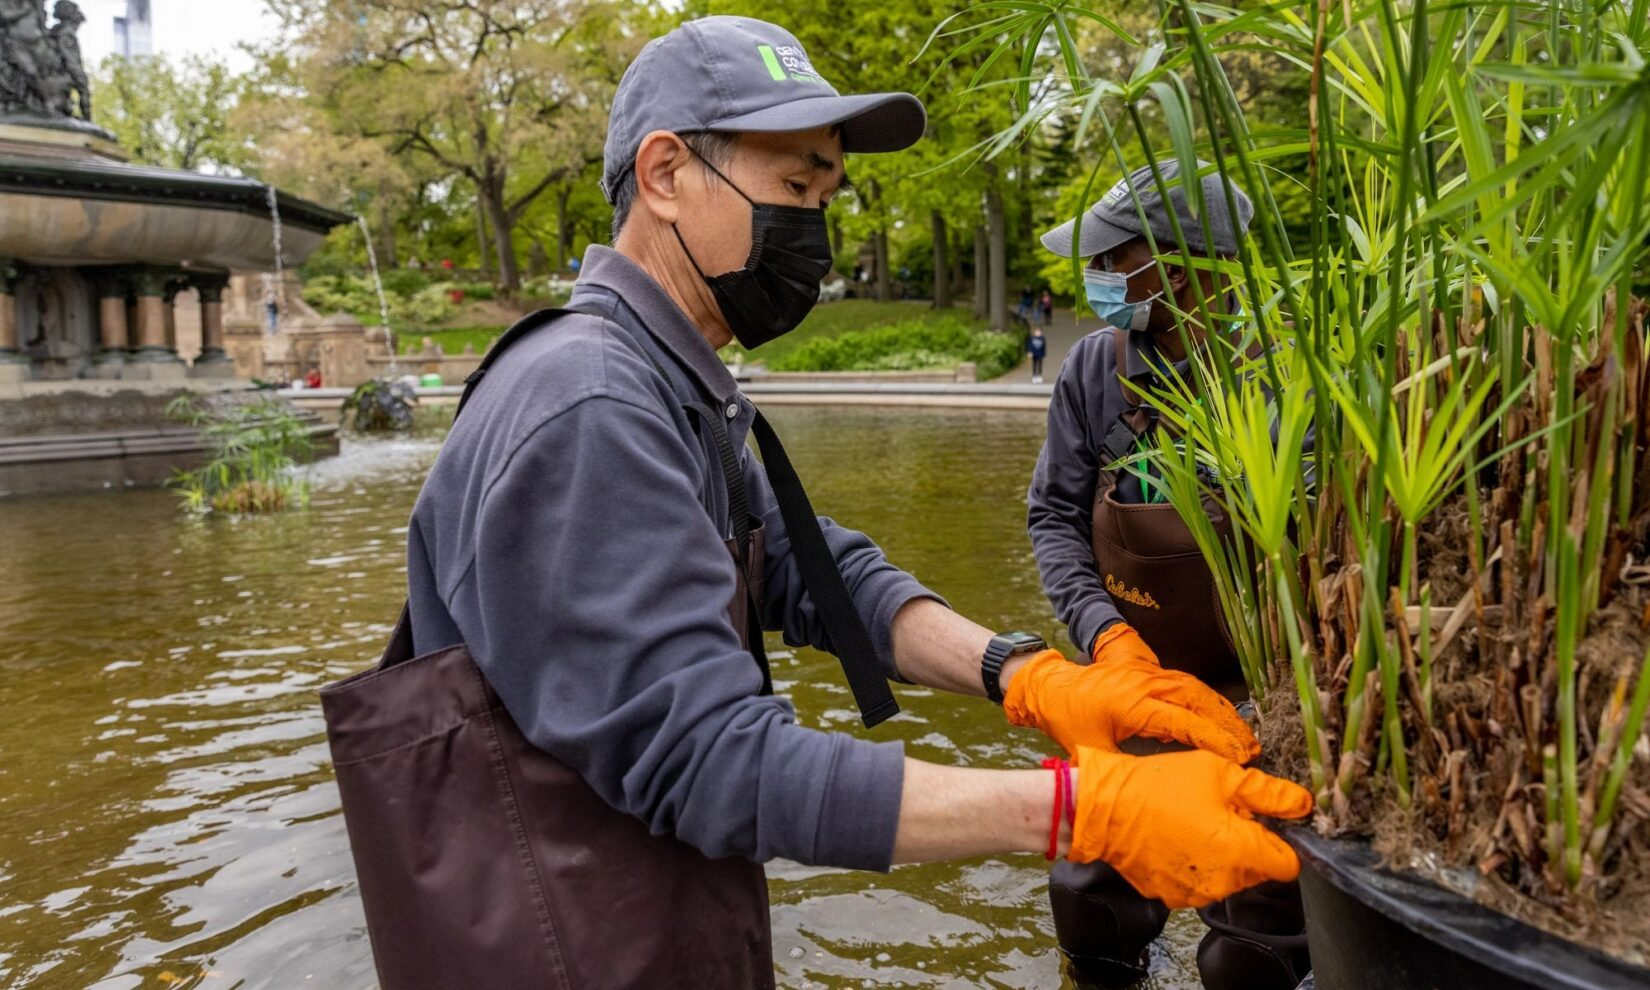 Conservancy staff member William Quansah, in waders, attends to the plants in Bethesda Fountain.